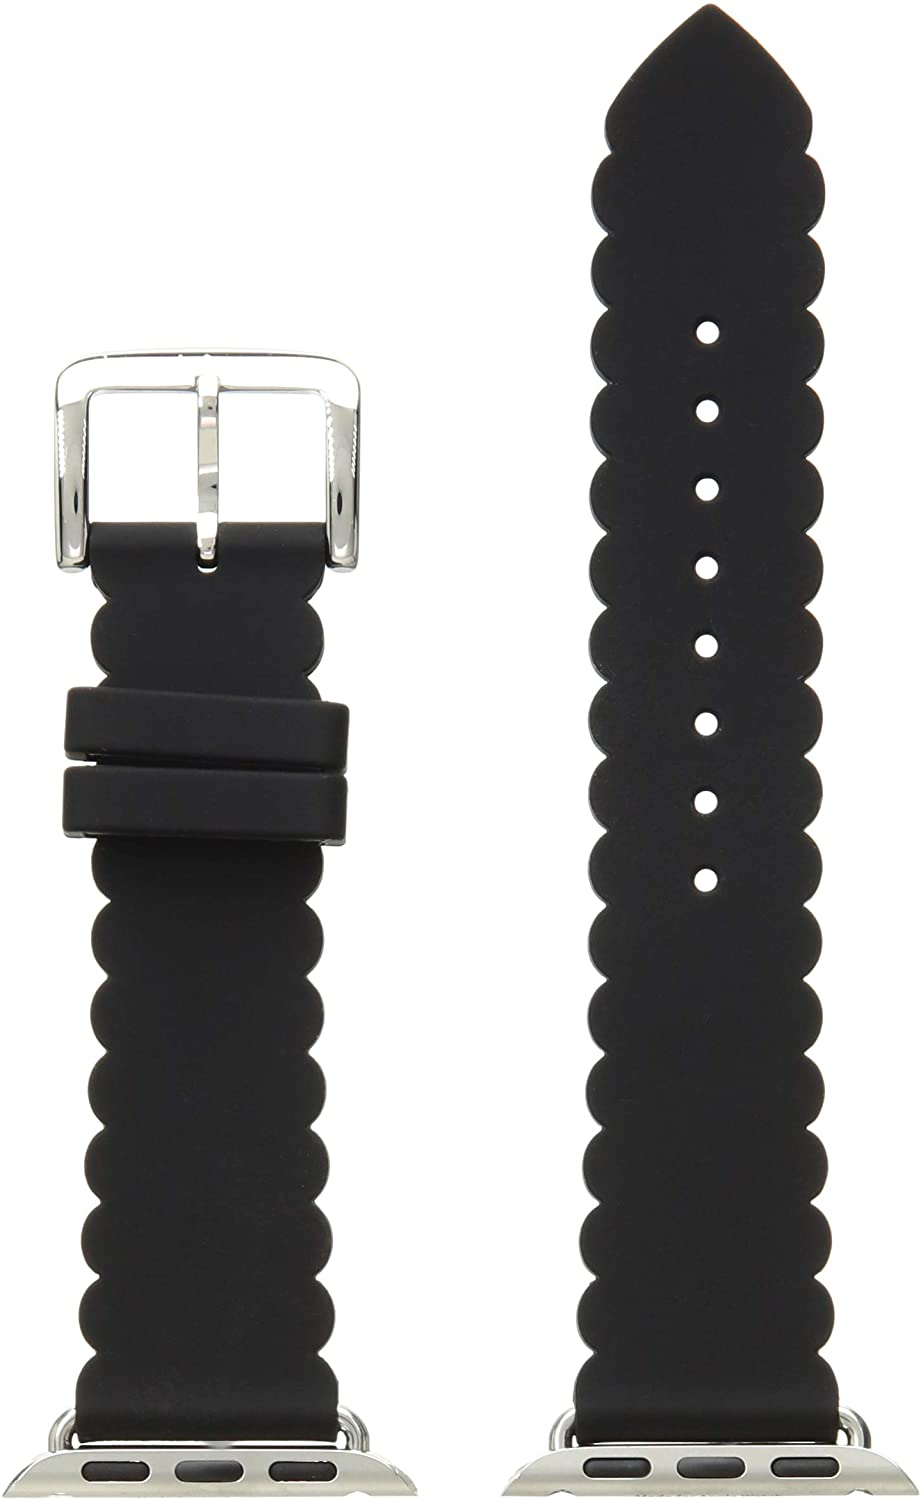 Kate Spade New York Interchangeable Silicone Band Compatible with Your 38/40MM Apple Watch- Straps for use with Apple Watch Series 1,2,3,4,5,6